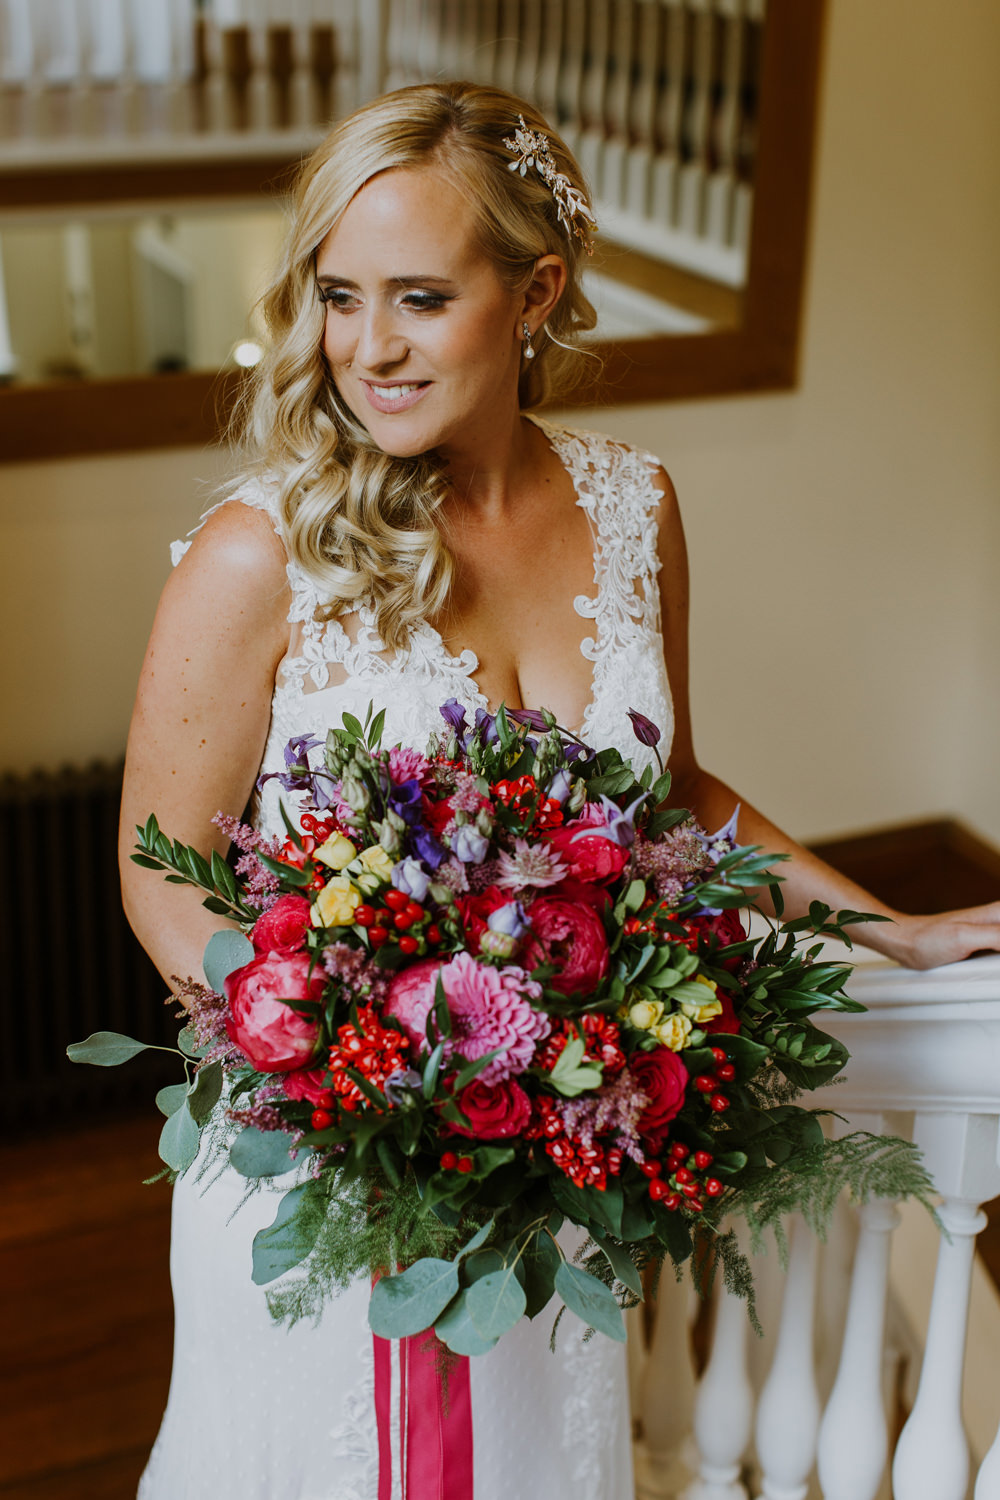 Bouquet Flowers Bride Bridal Pink Red Purple Greenery Foliage Peony Rose Ribbons Notley Abbey Wedding Alexandra Jane Photography